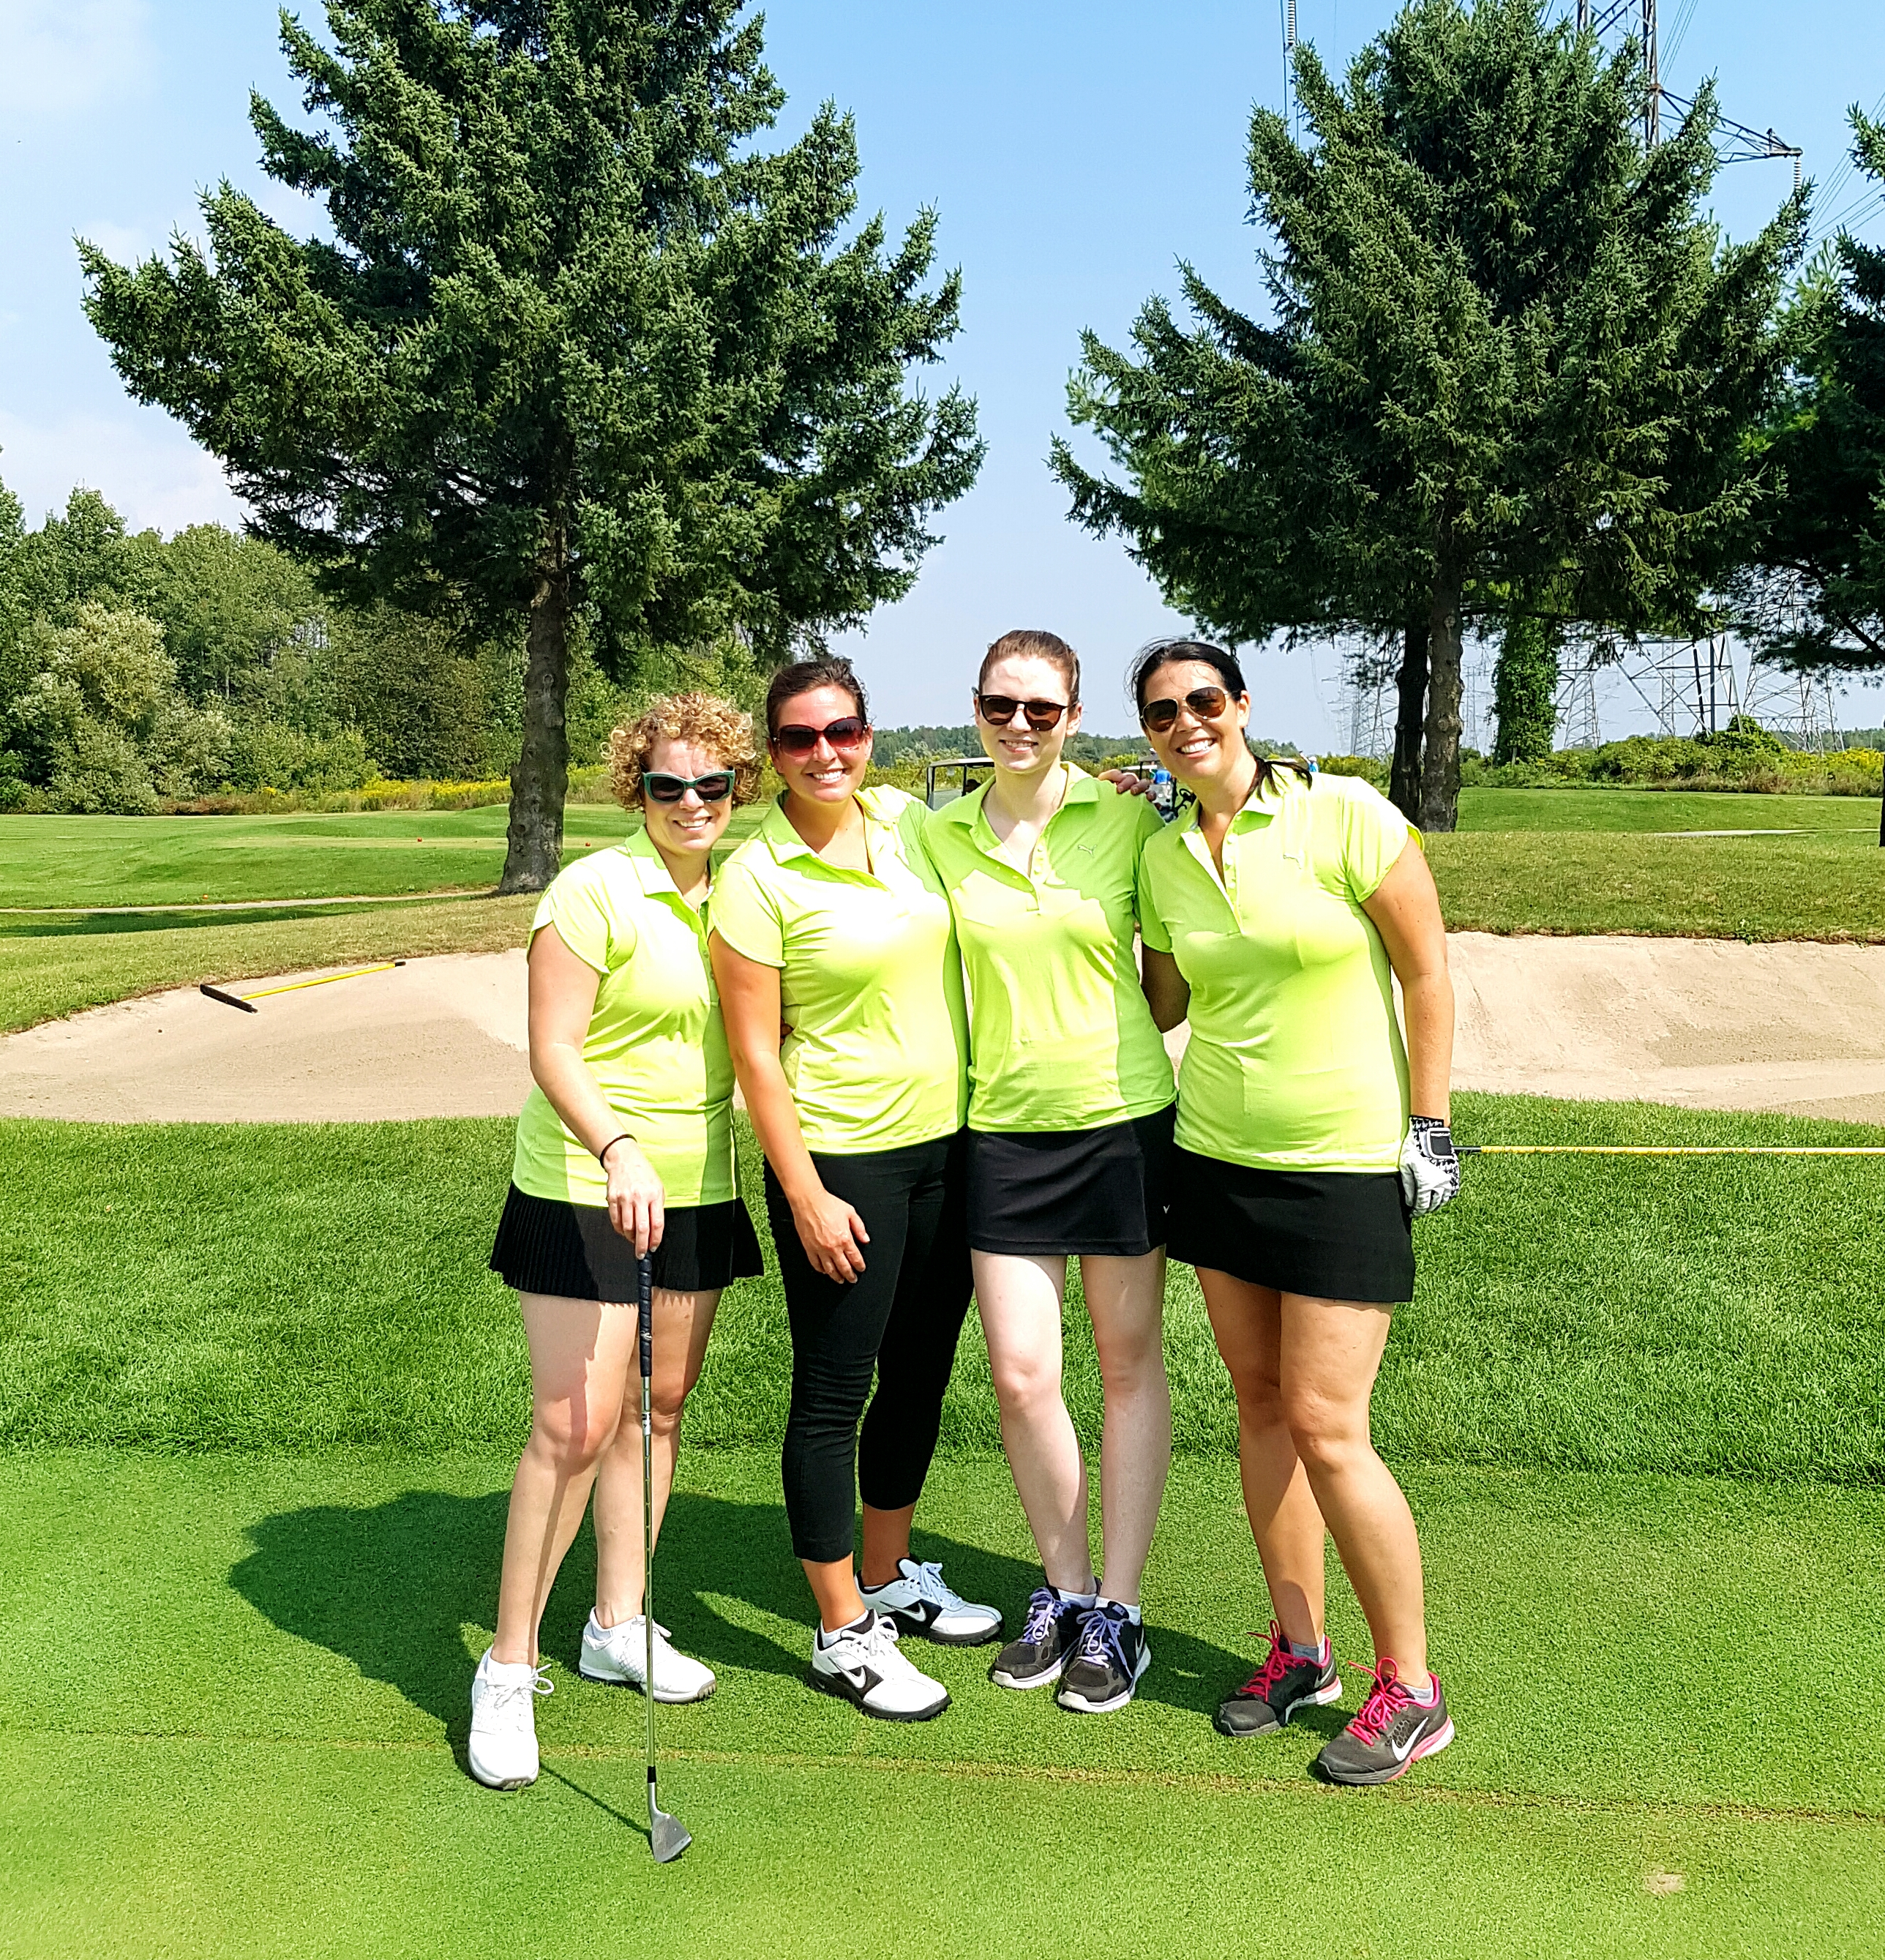 four smiling people standing on a golf course wearing bright green golf shirts